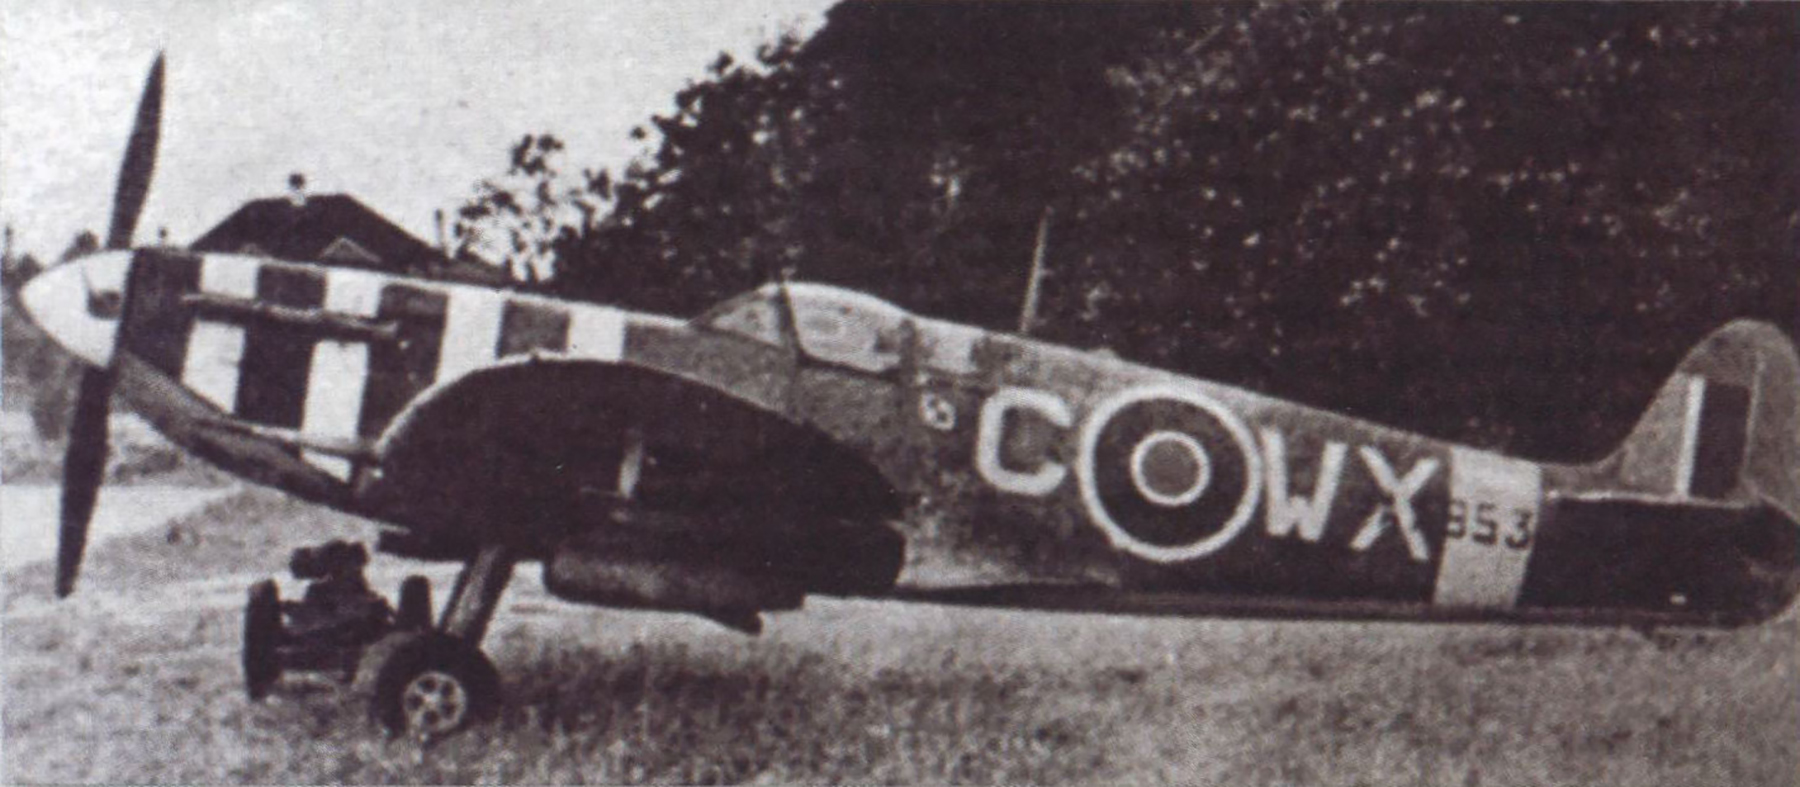 Spitfire MkVb RAF 302Sqn WXC AA853 during the Dieppe landing England Aug 1942 Military Revue Sep 2013 P16